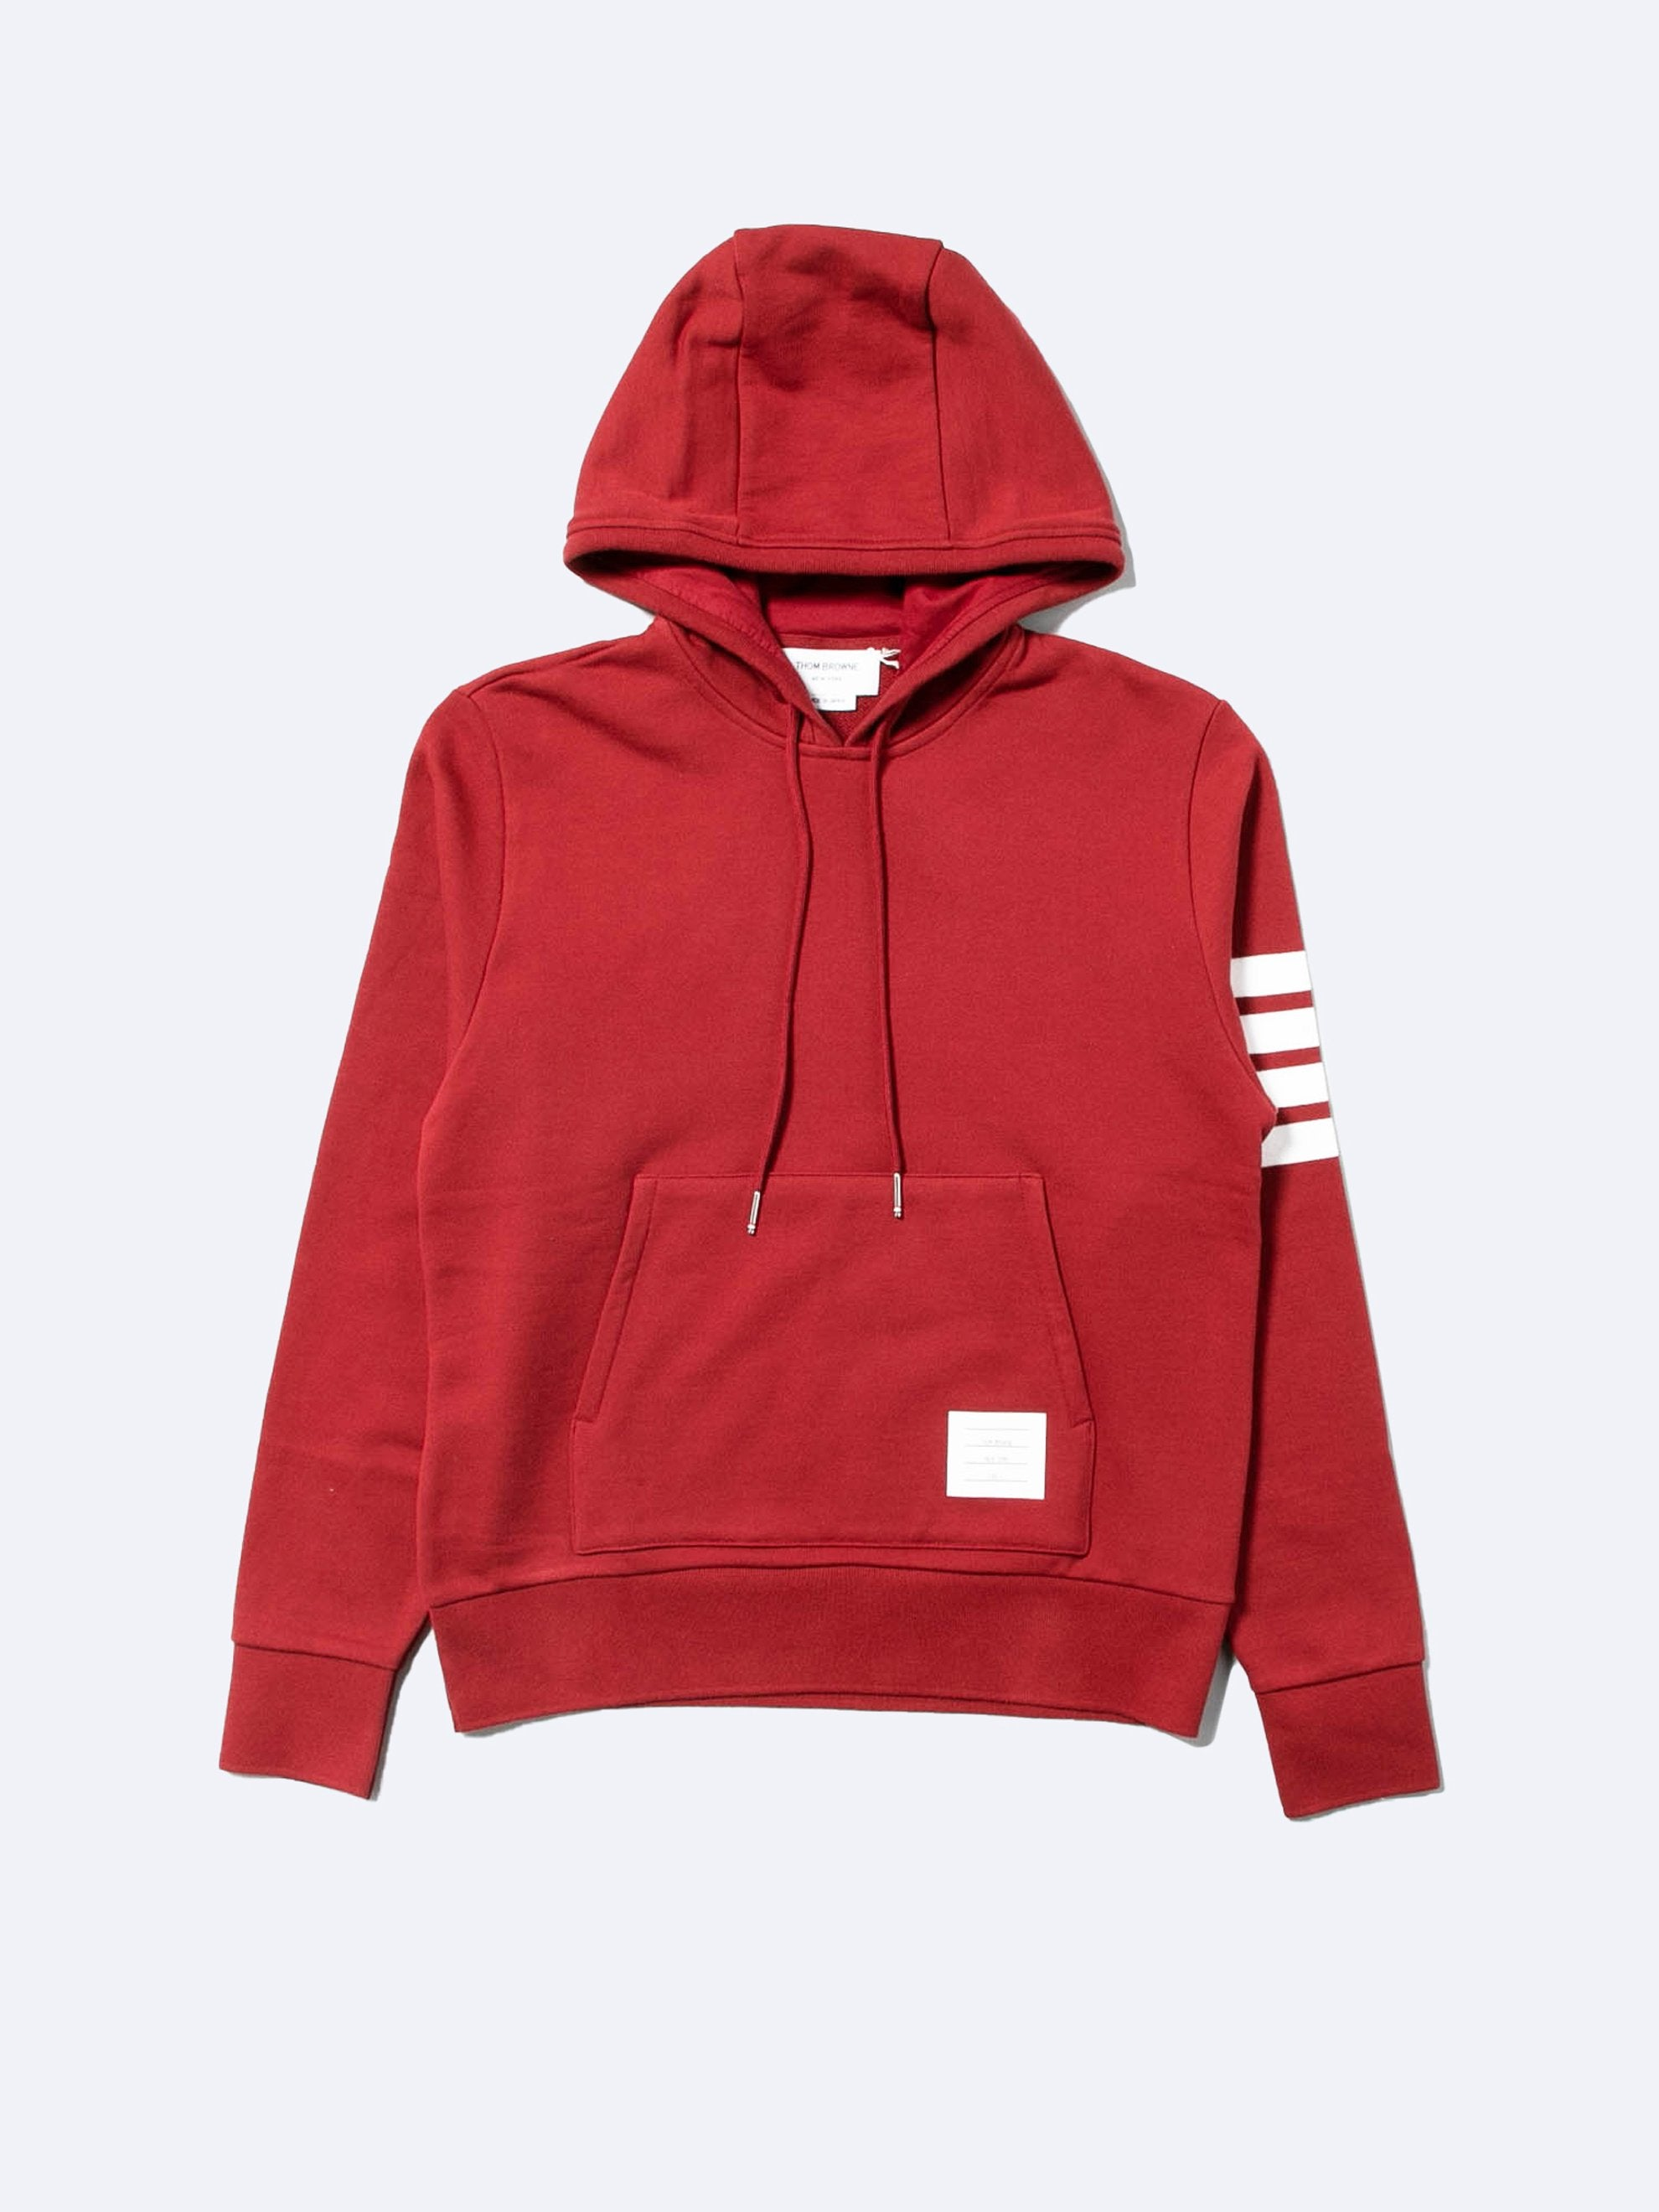 Med Red Hoodie Pullover In Classic Loop Back w/ Engineered 4 Bar 1